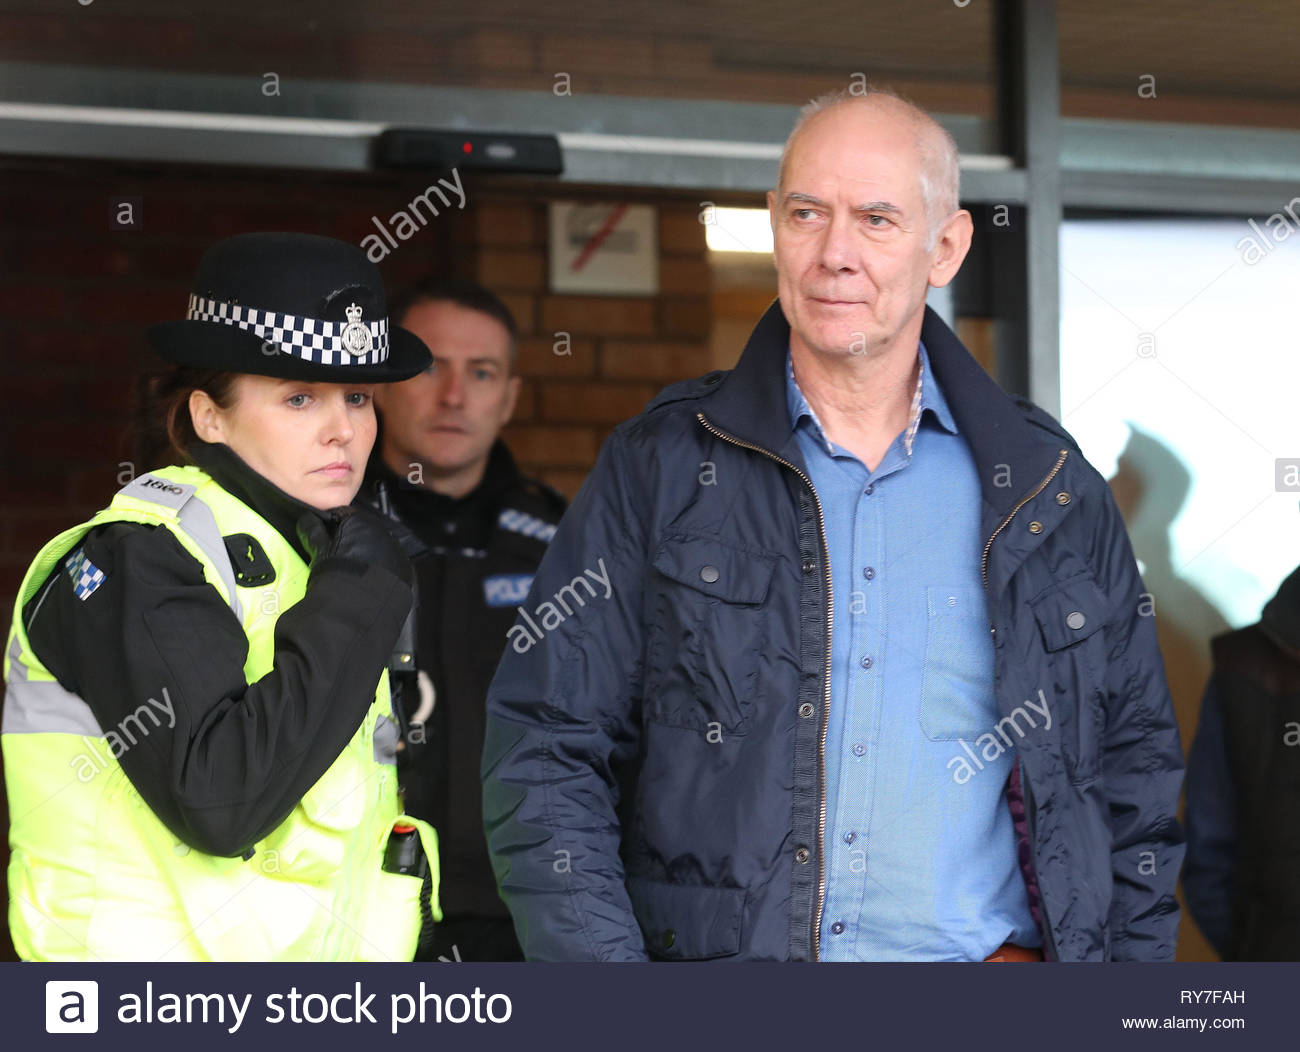 File photo dated 19/12/17 of David McClure, 62, a former prison officer who worked at Medomsley Detention Centre in Consett, County Durham and who has been cleared of all charges at Teesside Crown Court of the historic physical abuse of teenage inmates in the 1970s and 1980s. - Stock Image